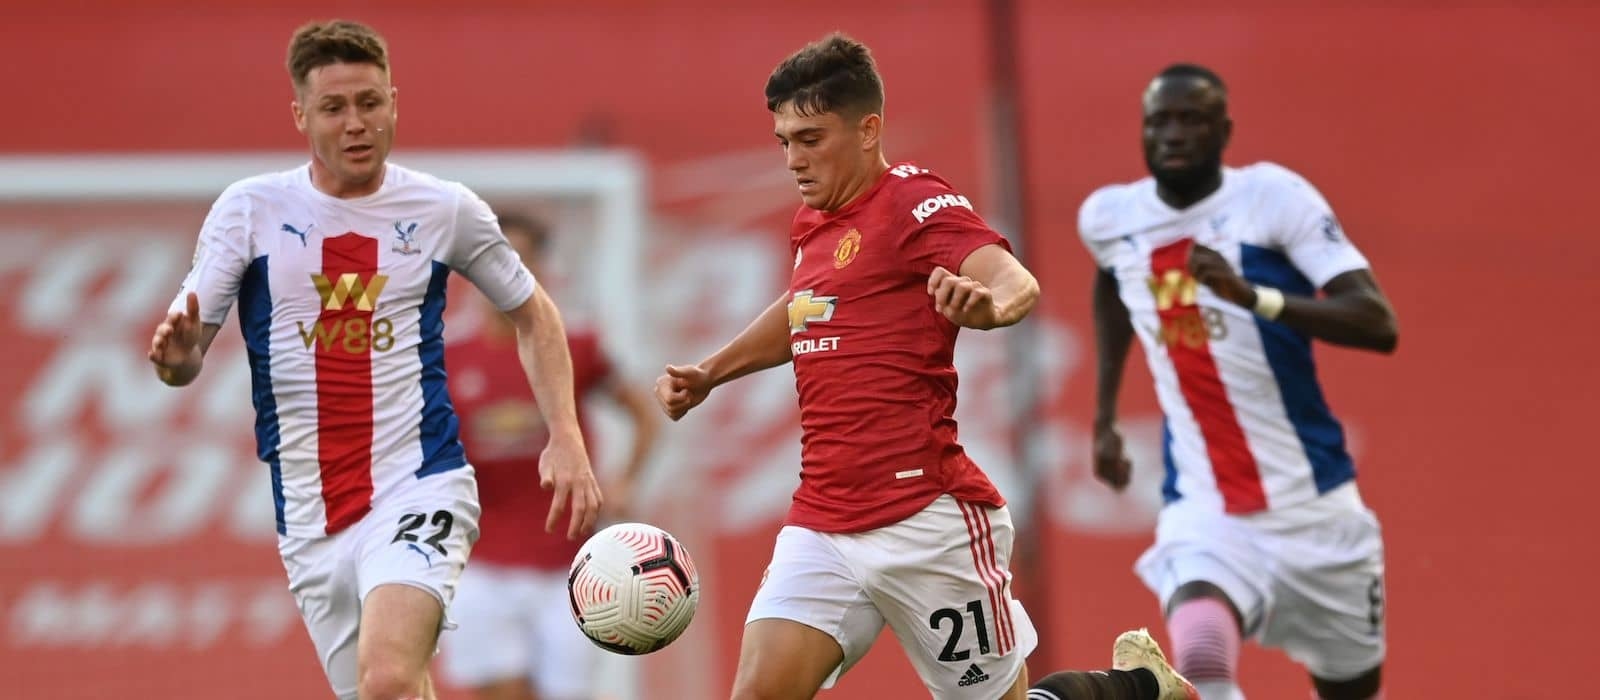 Fans happy for Daniel James to be loaned to Leeds United